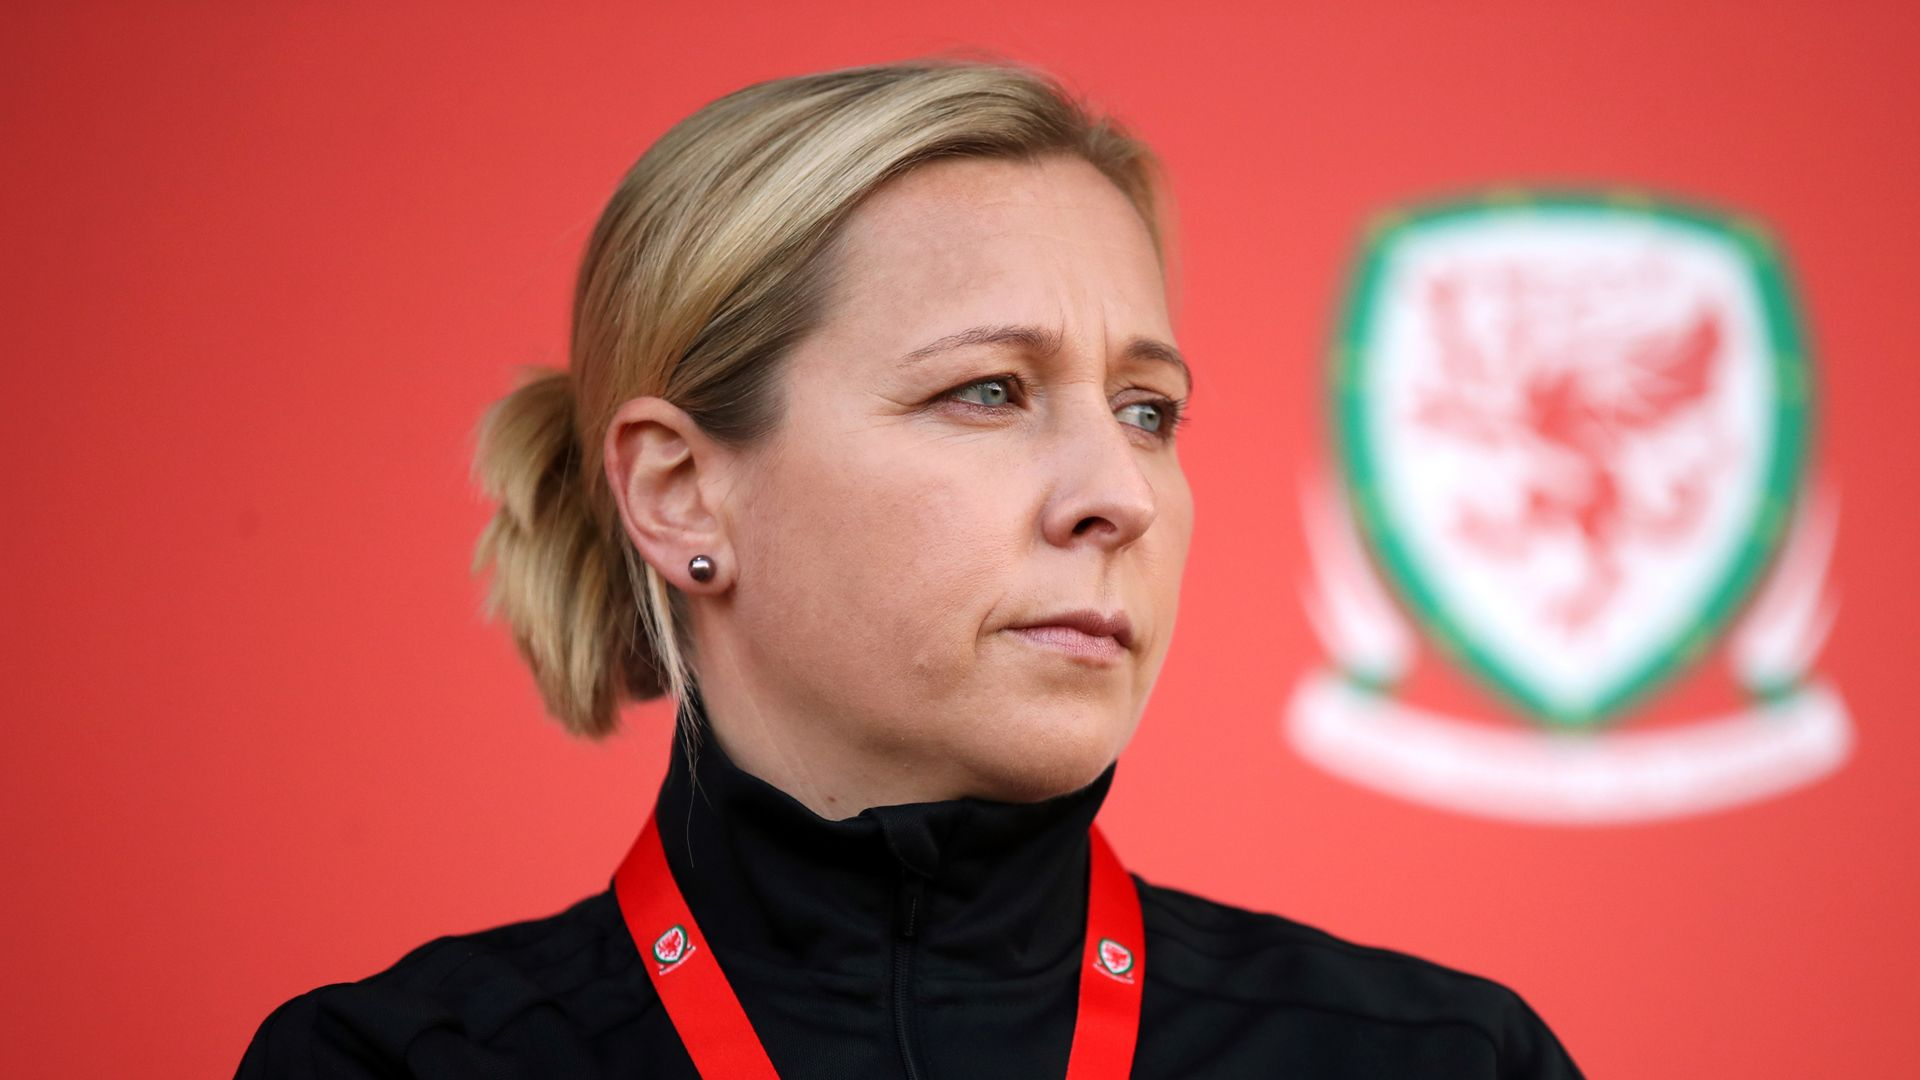 Ludlow welcomes FIFA's maternity leave proposal